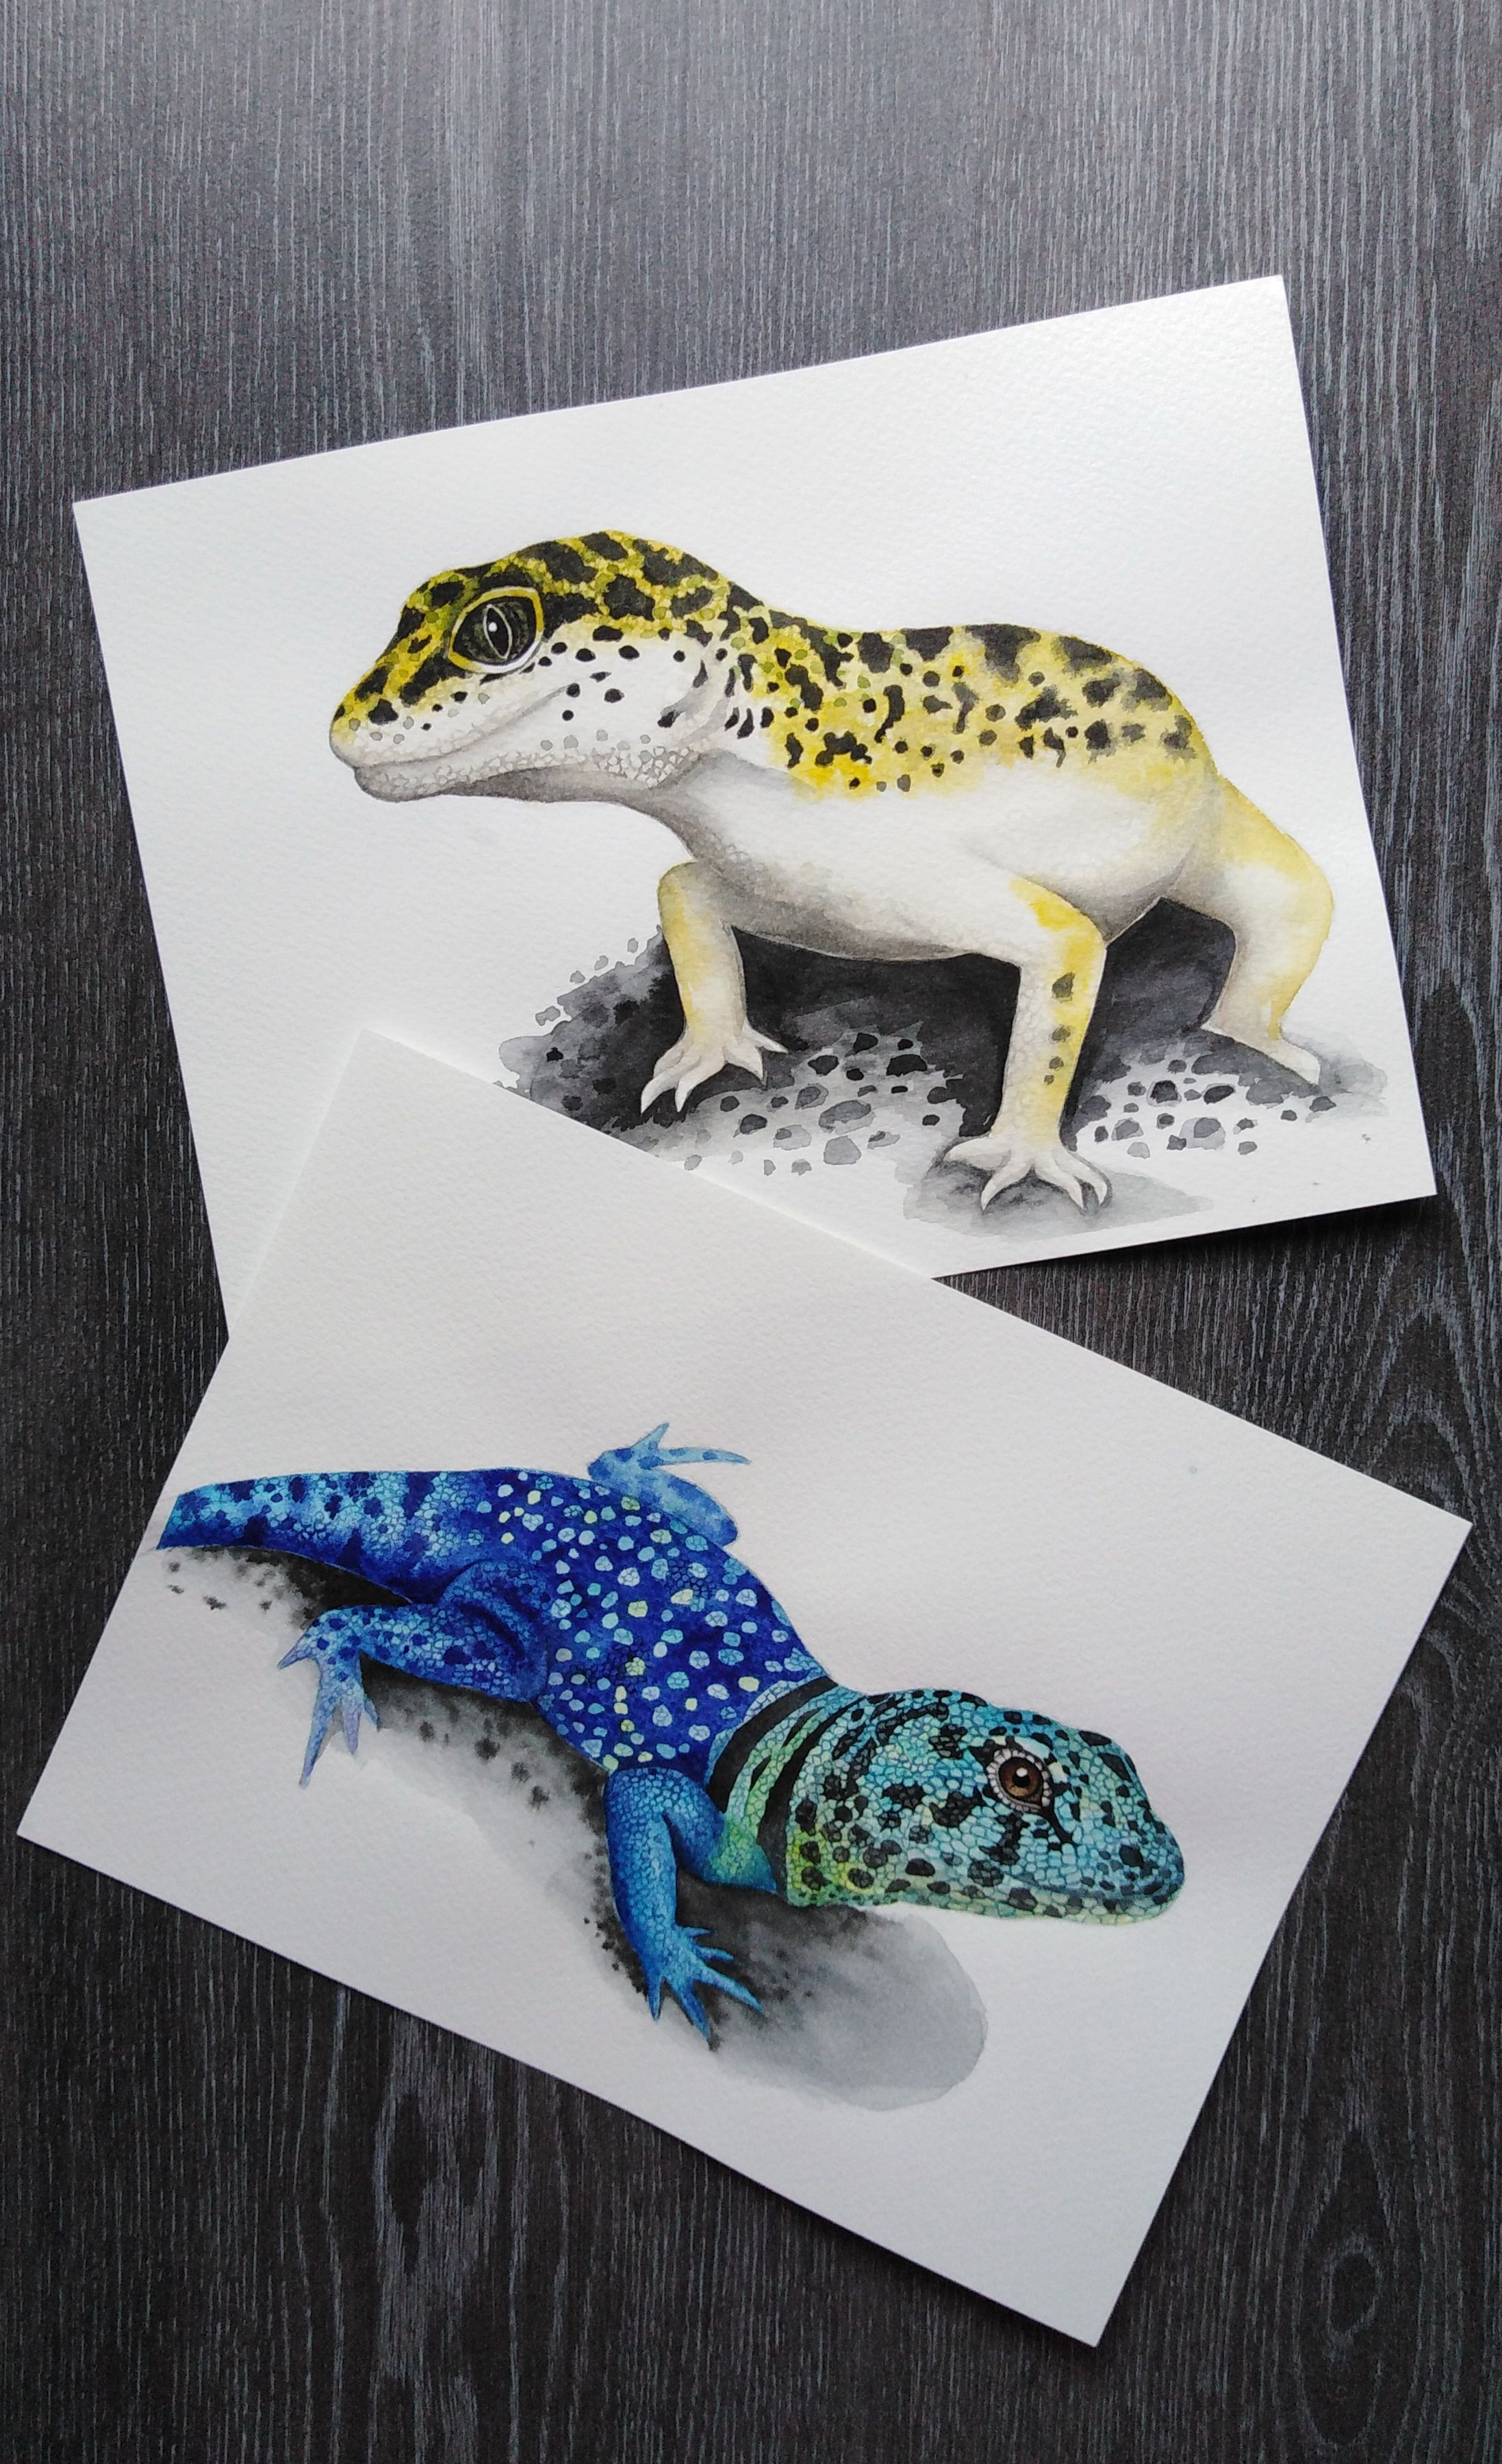 Blue Lizard Print Colorful Animals Realistic Drawing Lizard Wall Art Reptile Drawing Blue Lizard Reptile Lizard Pi Colorful Animals Realistic Drawings Reptiles